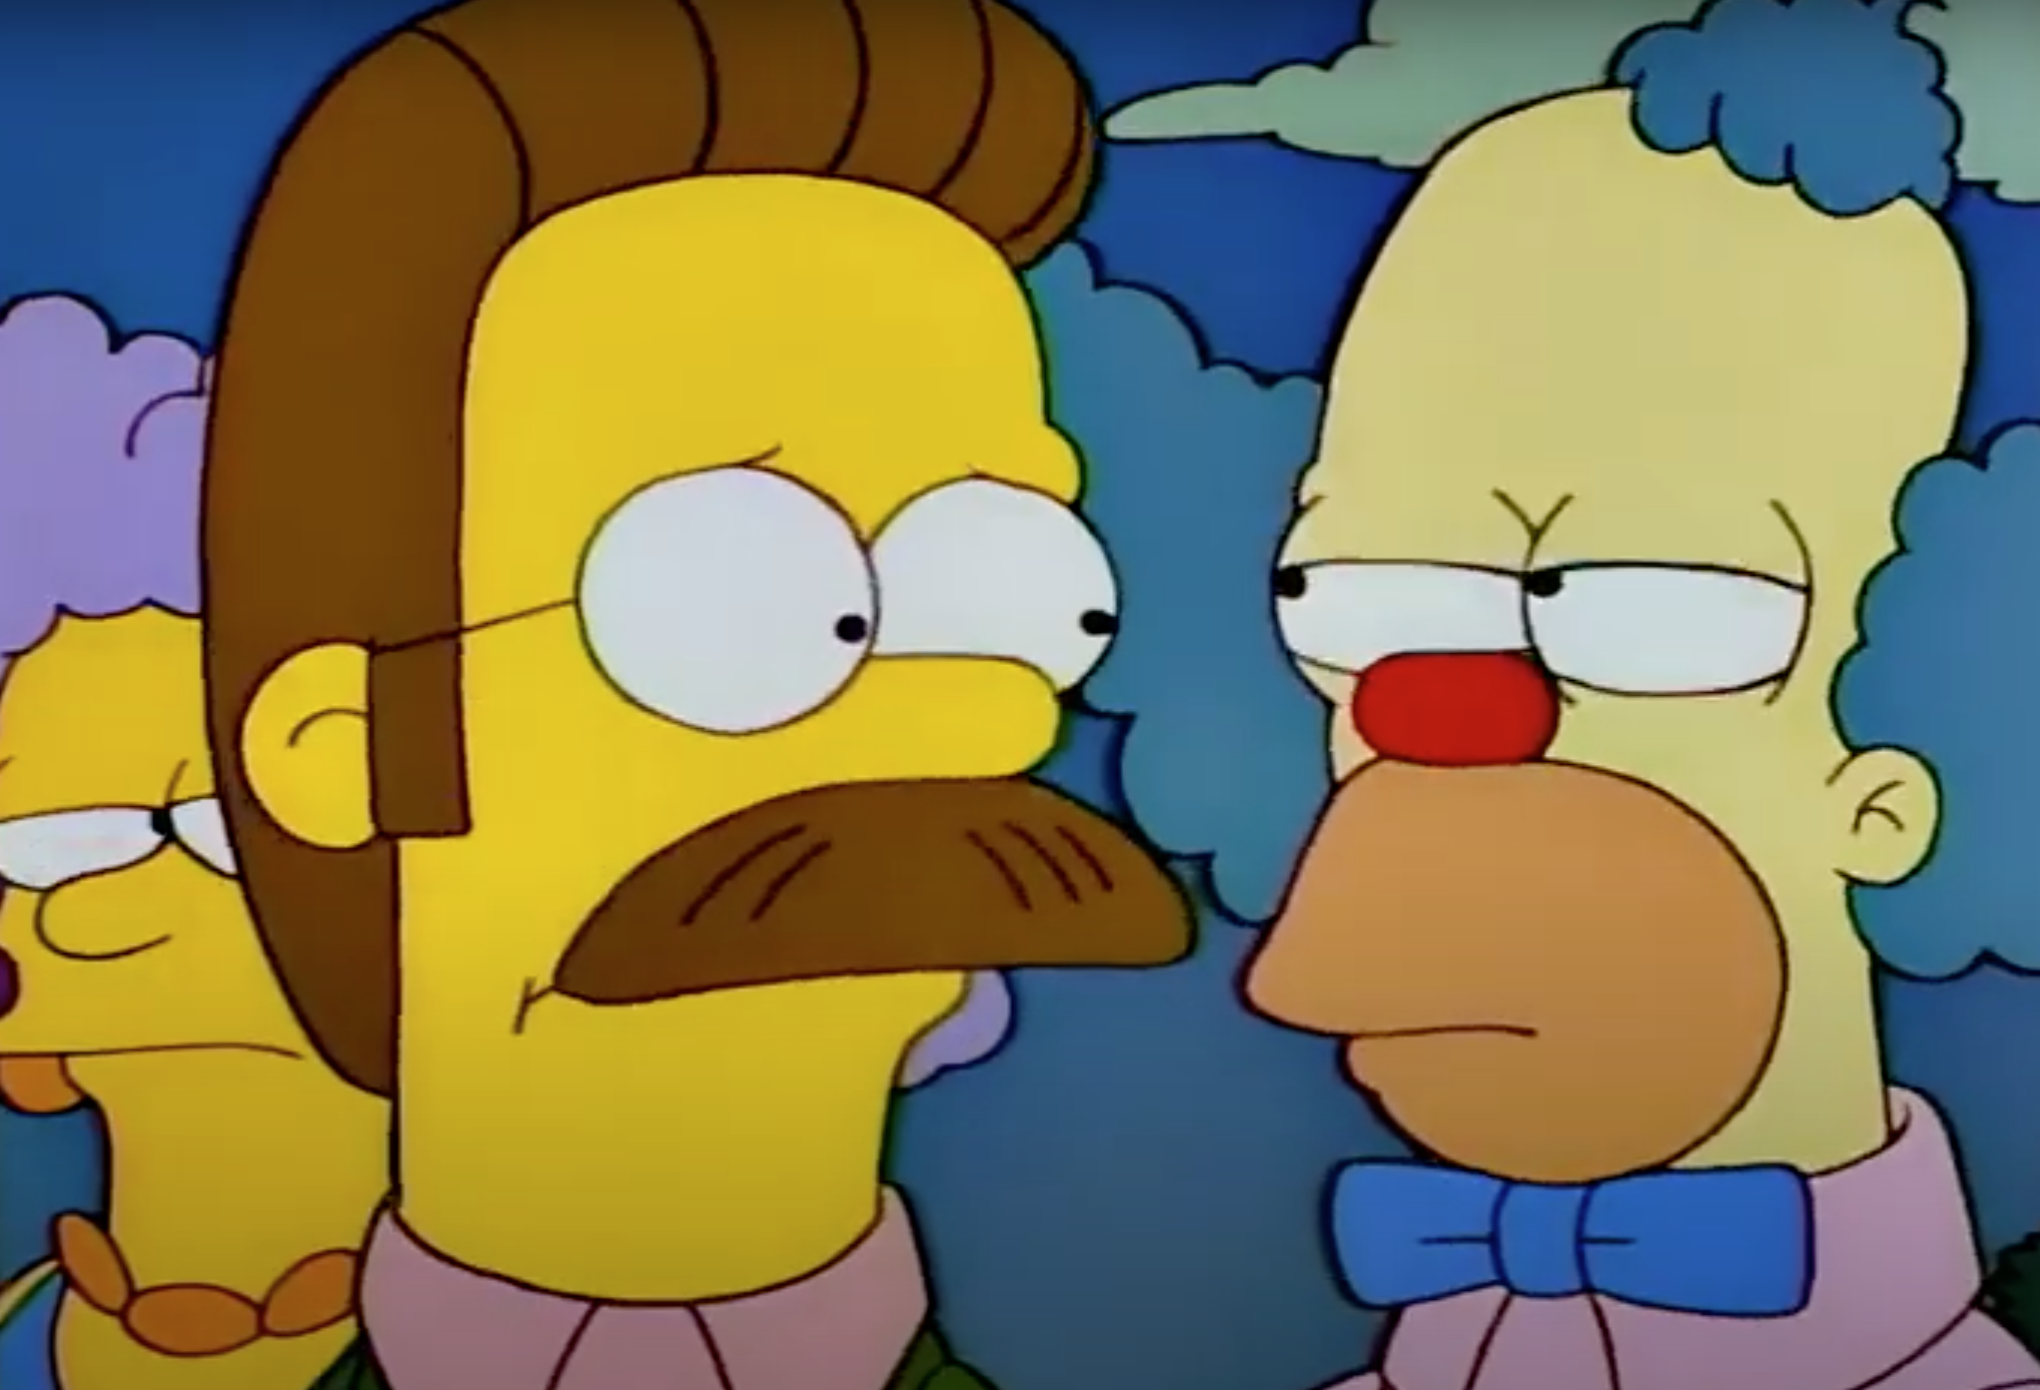 The Simpsons Composer Alf Clausen Fired For Delegating His Work To